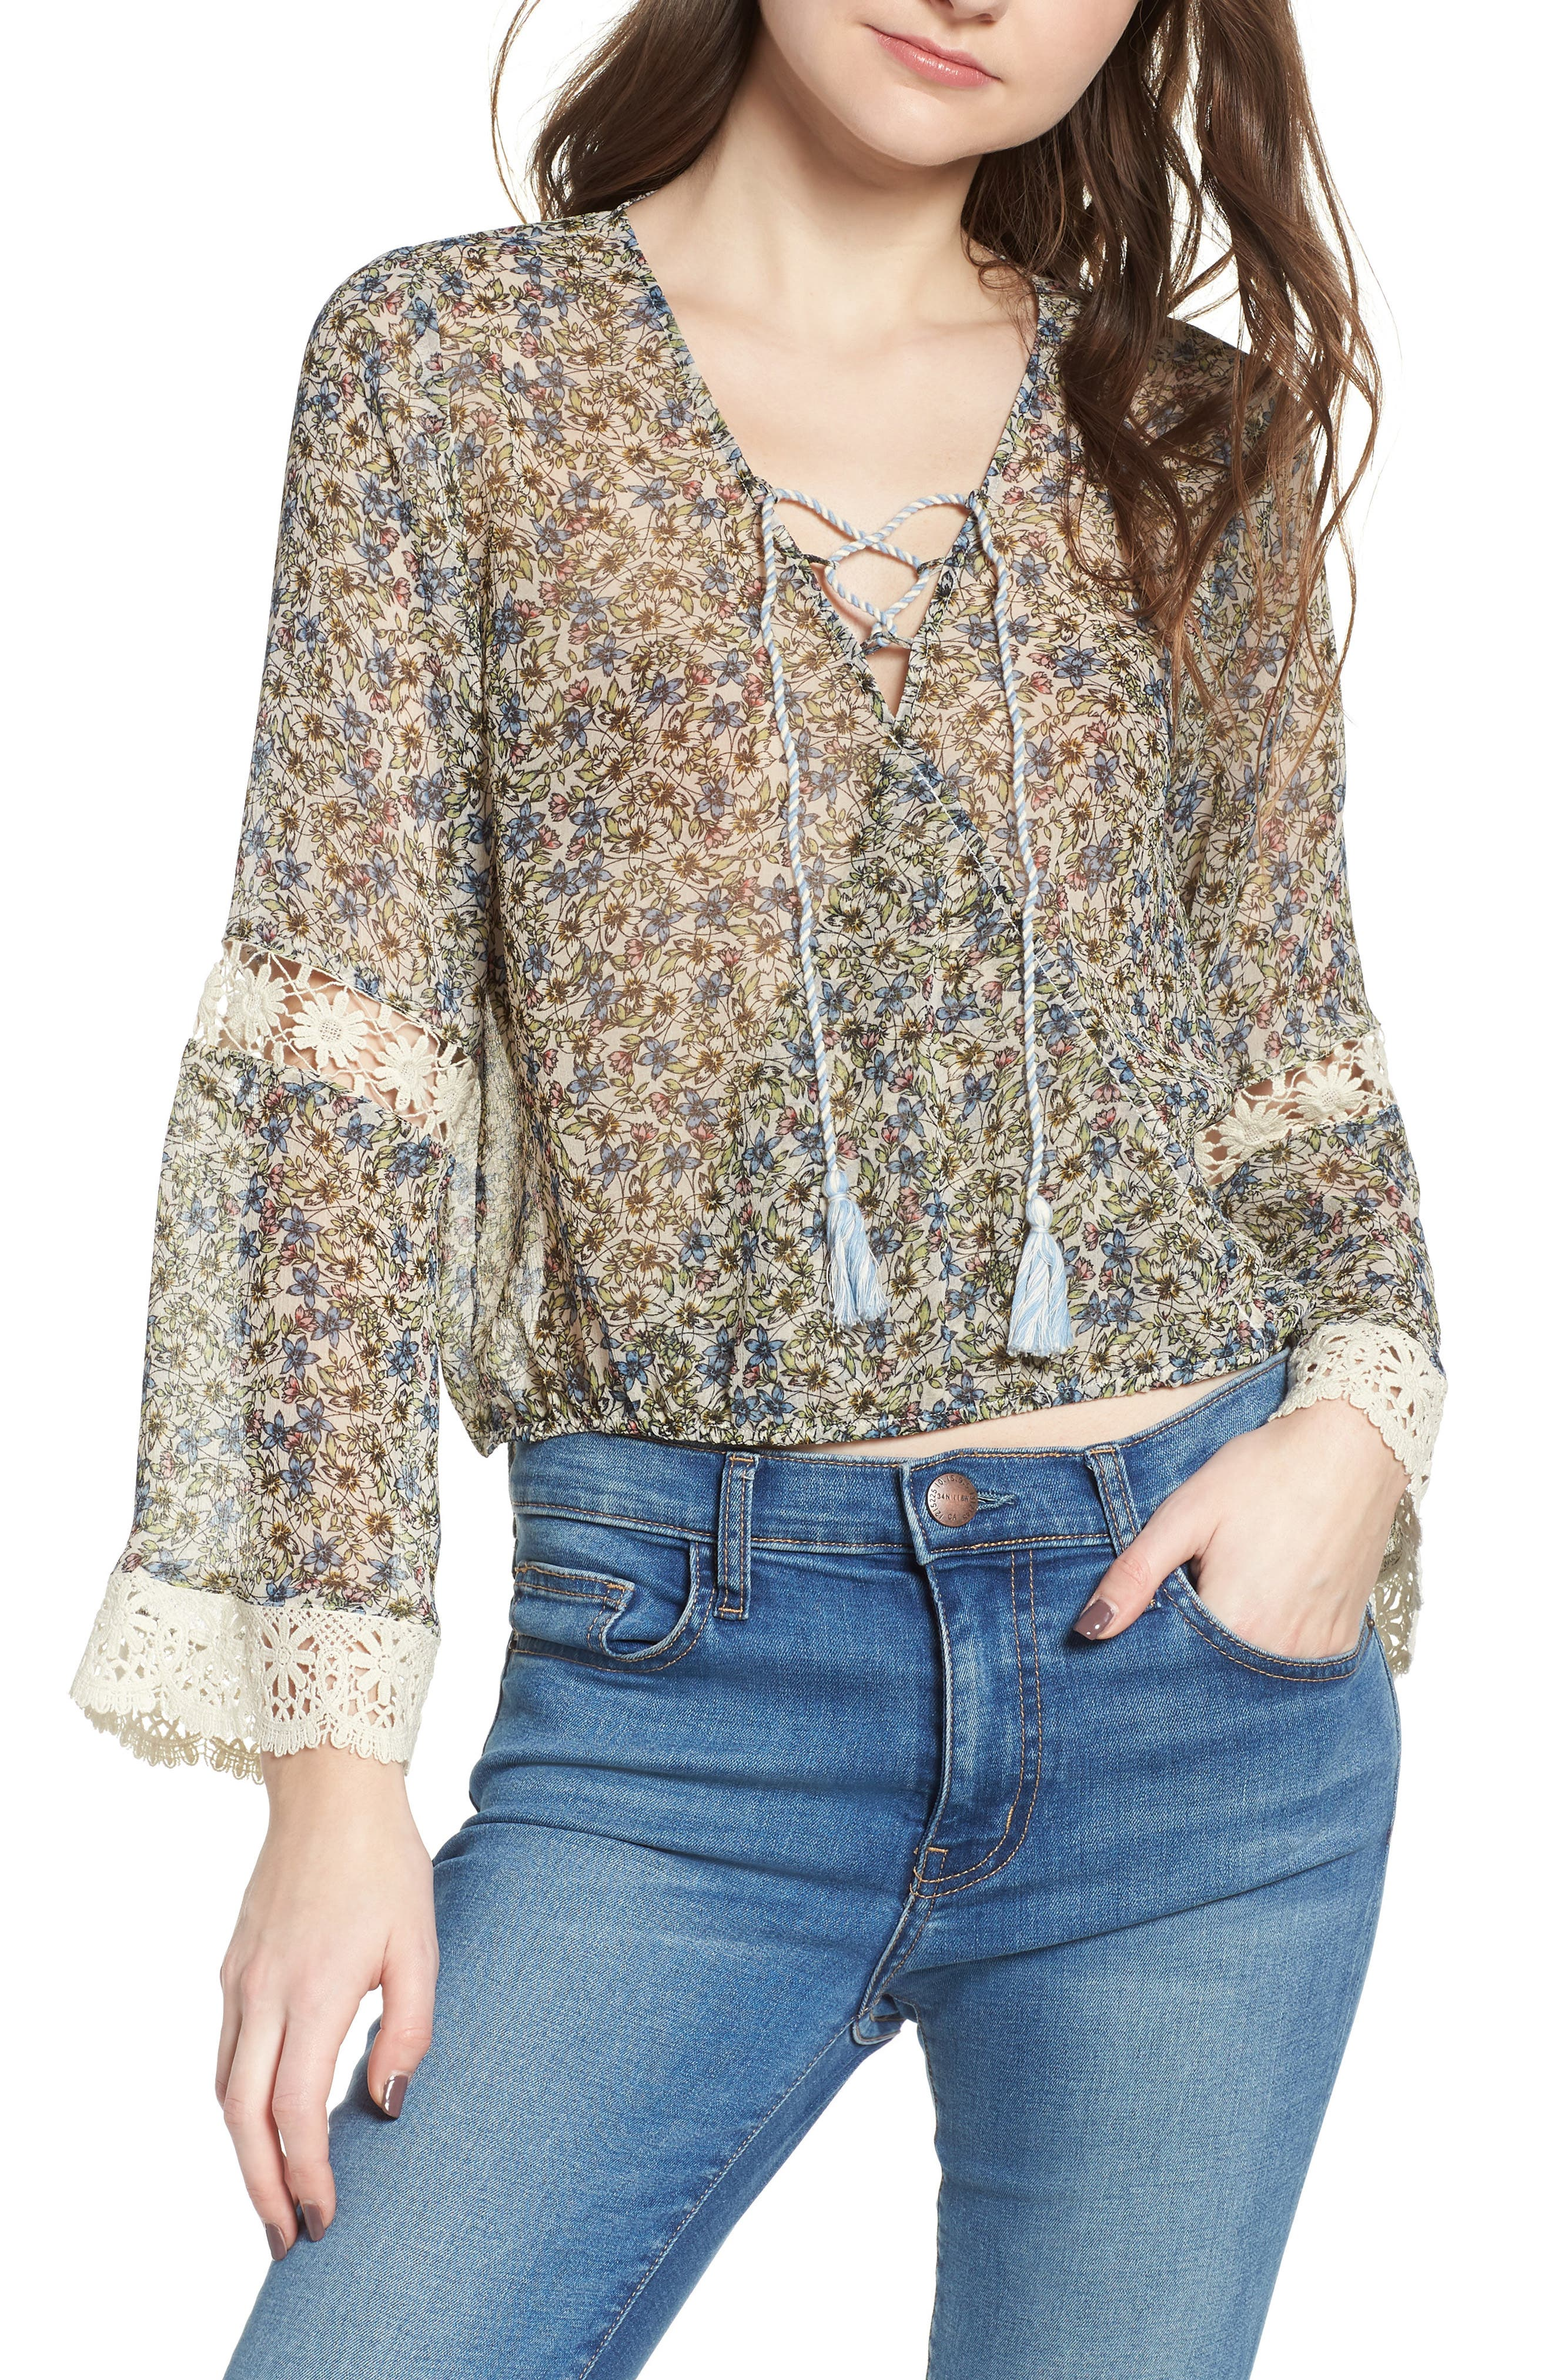 Zilla Floral Blouse,                         Main,                         color, OATMEAL